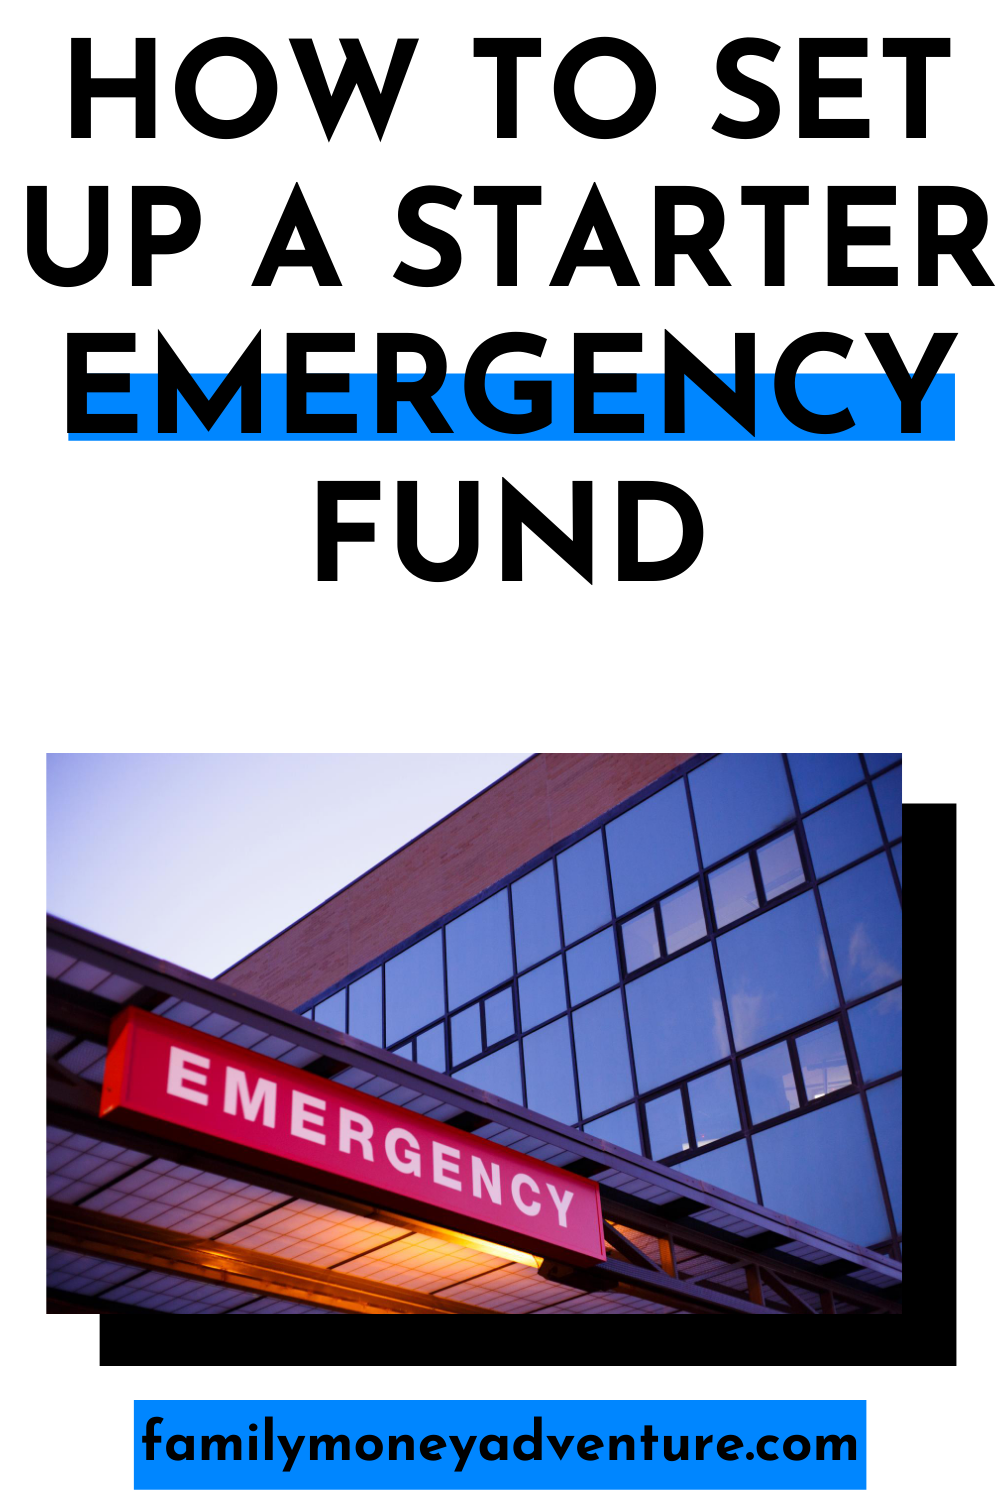 How to Set Up a Starter Emergency Fund